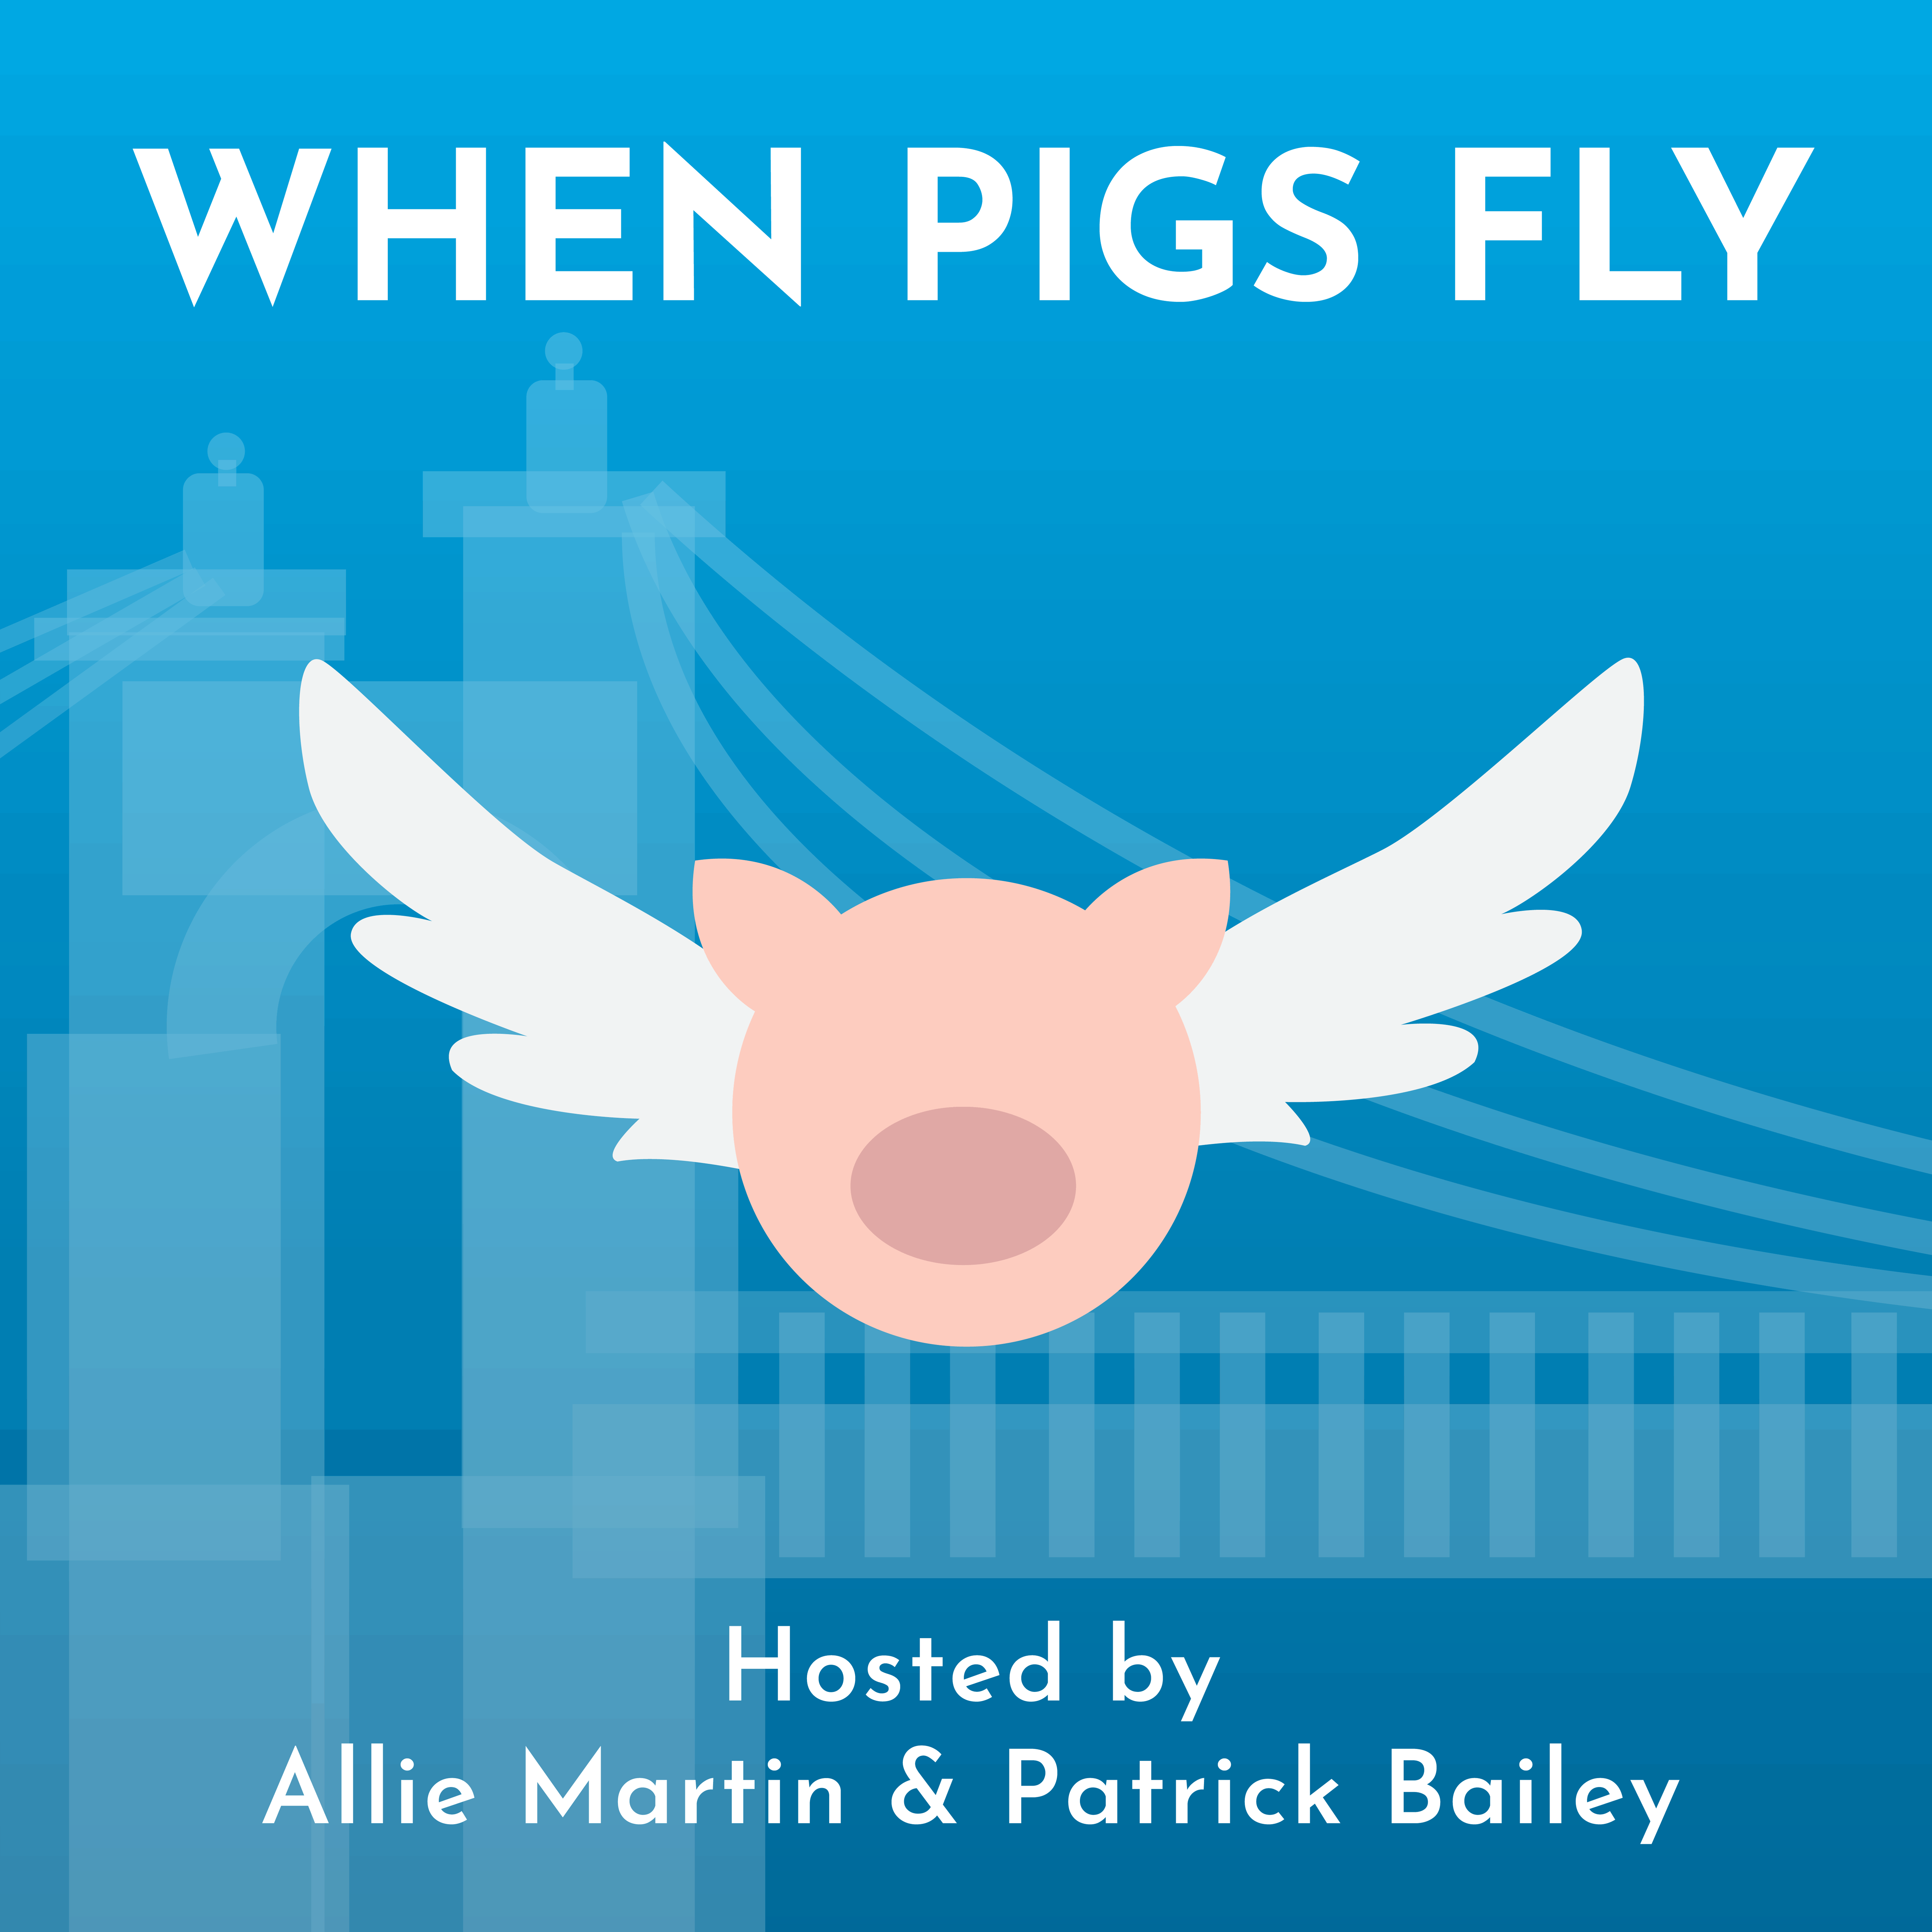 When Pigs Fly podcast artwork